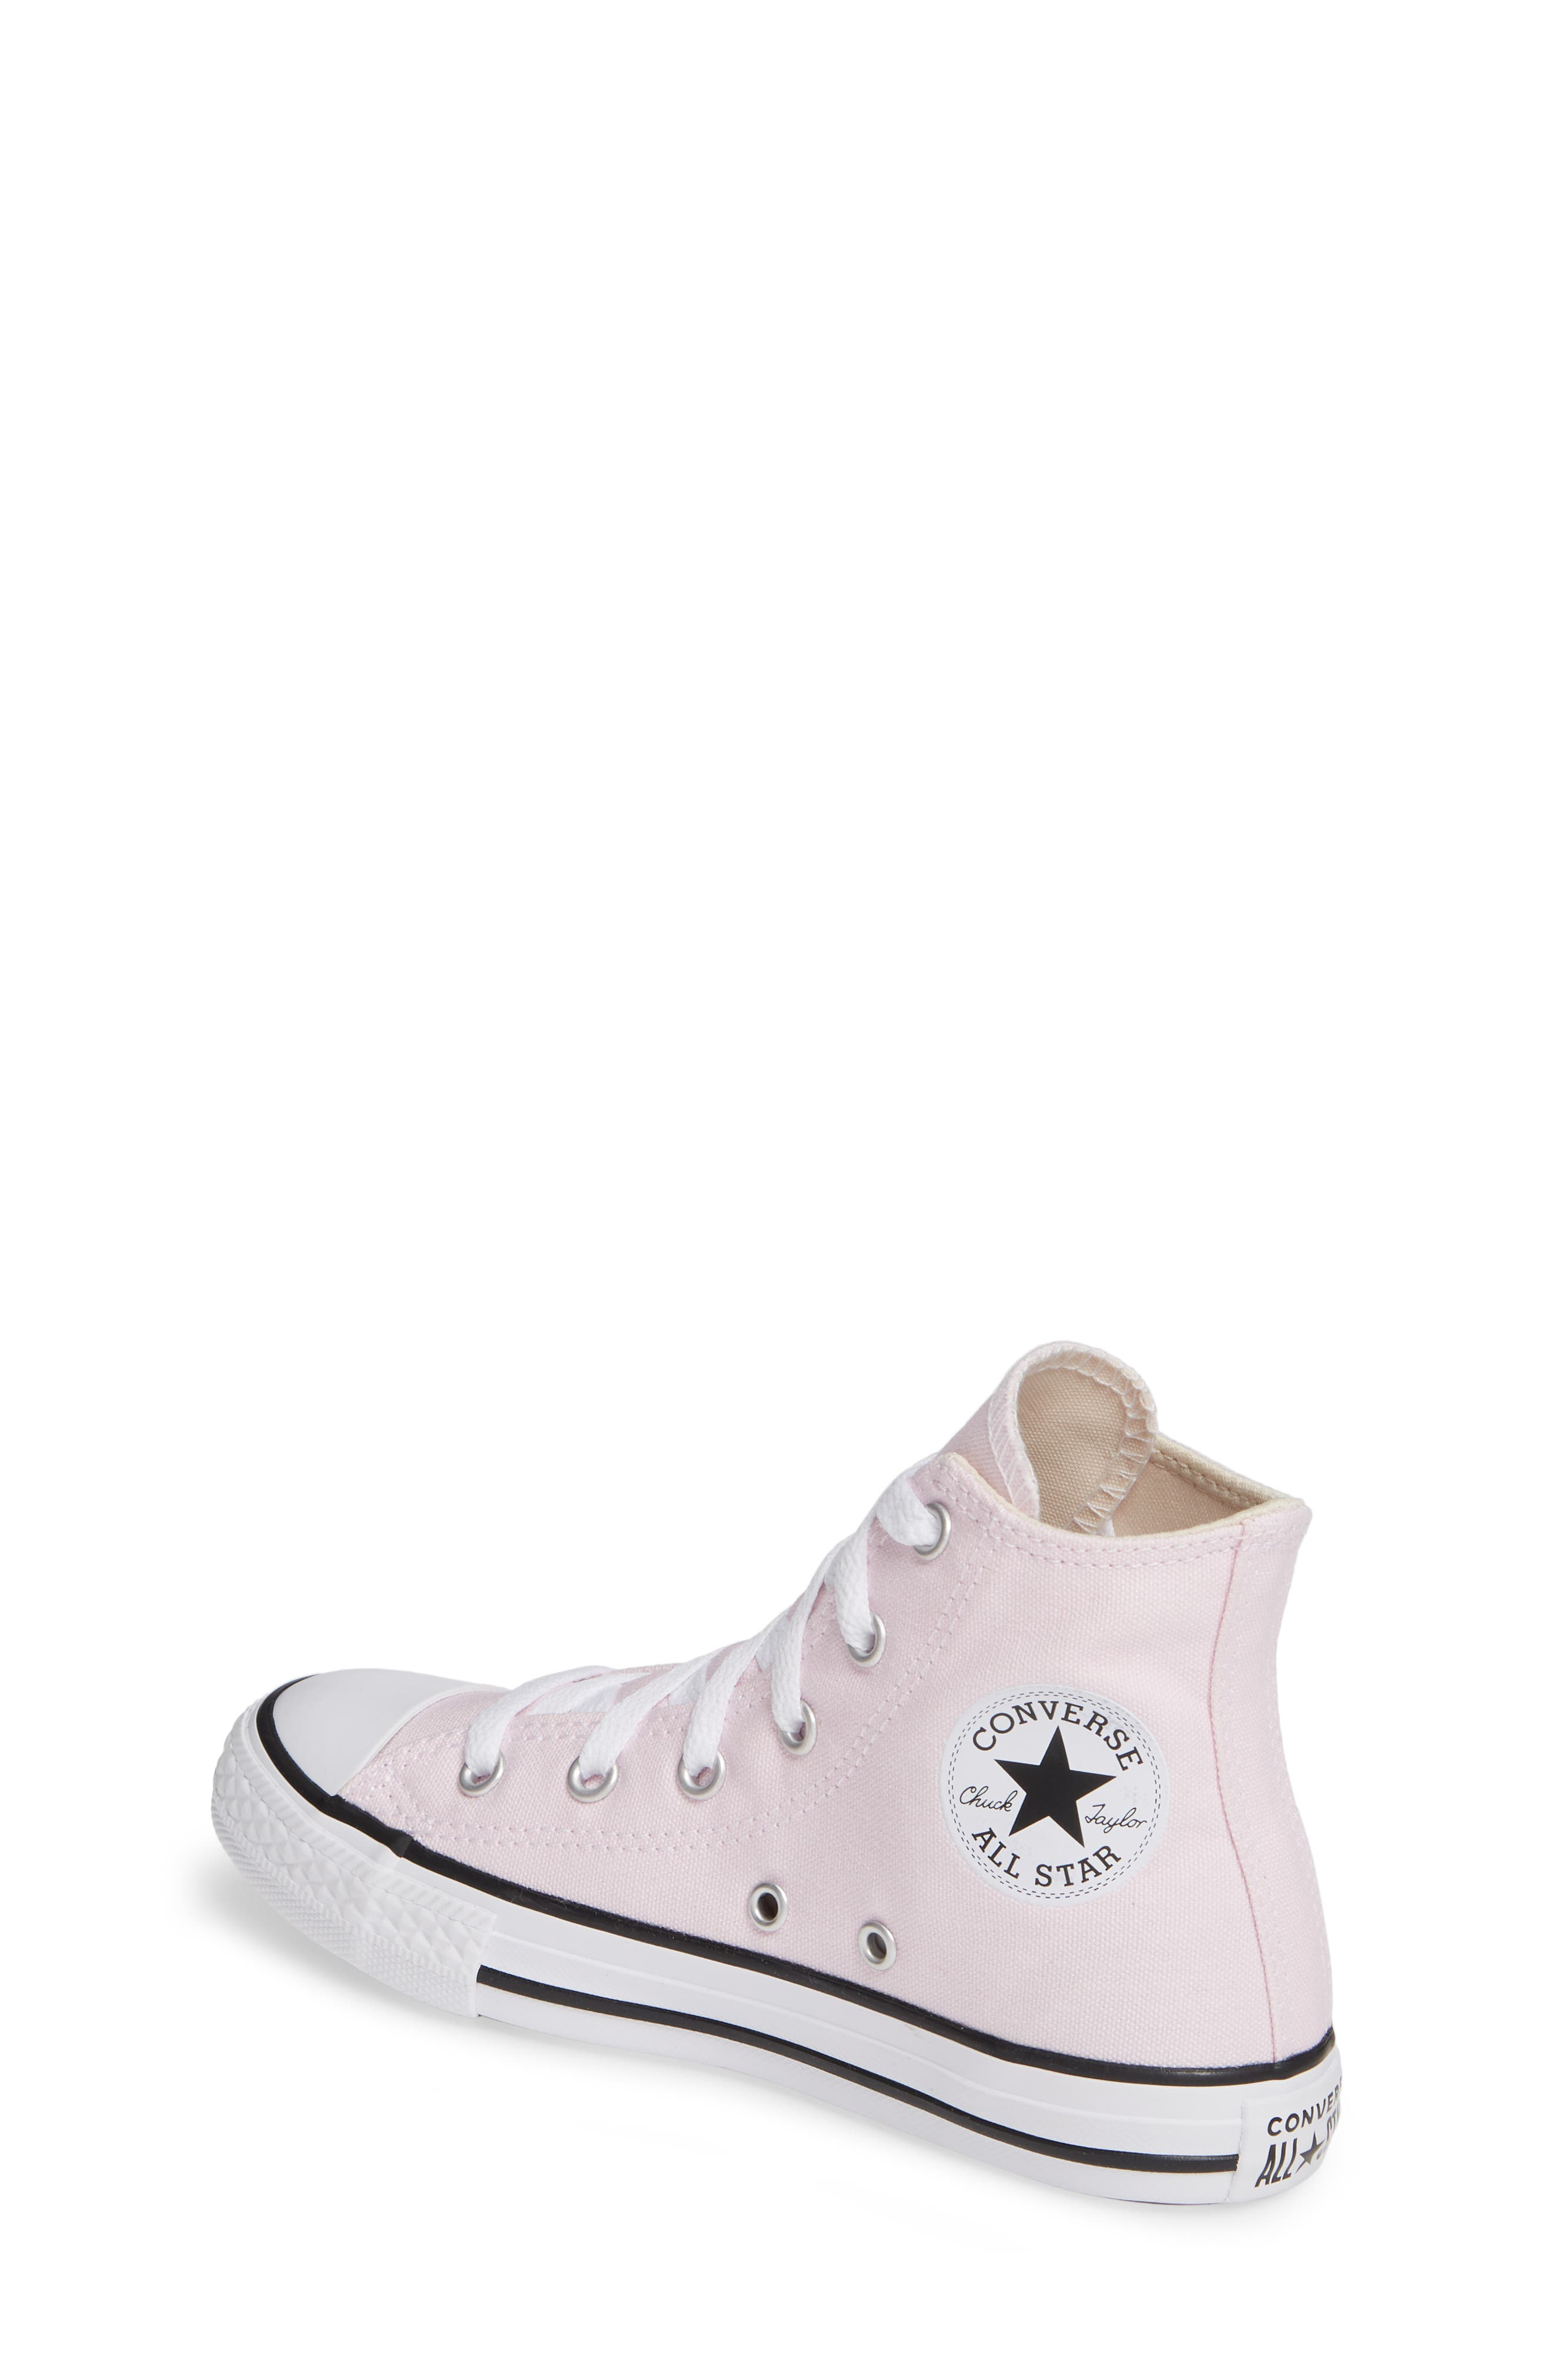 CONVERSE, Chuck Taylor<sup>®</sup> High Top Sneaker, Alternate thumbnail 2, color, PINK FOAM/ IVORY/ WHITE